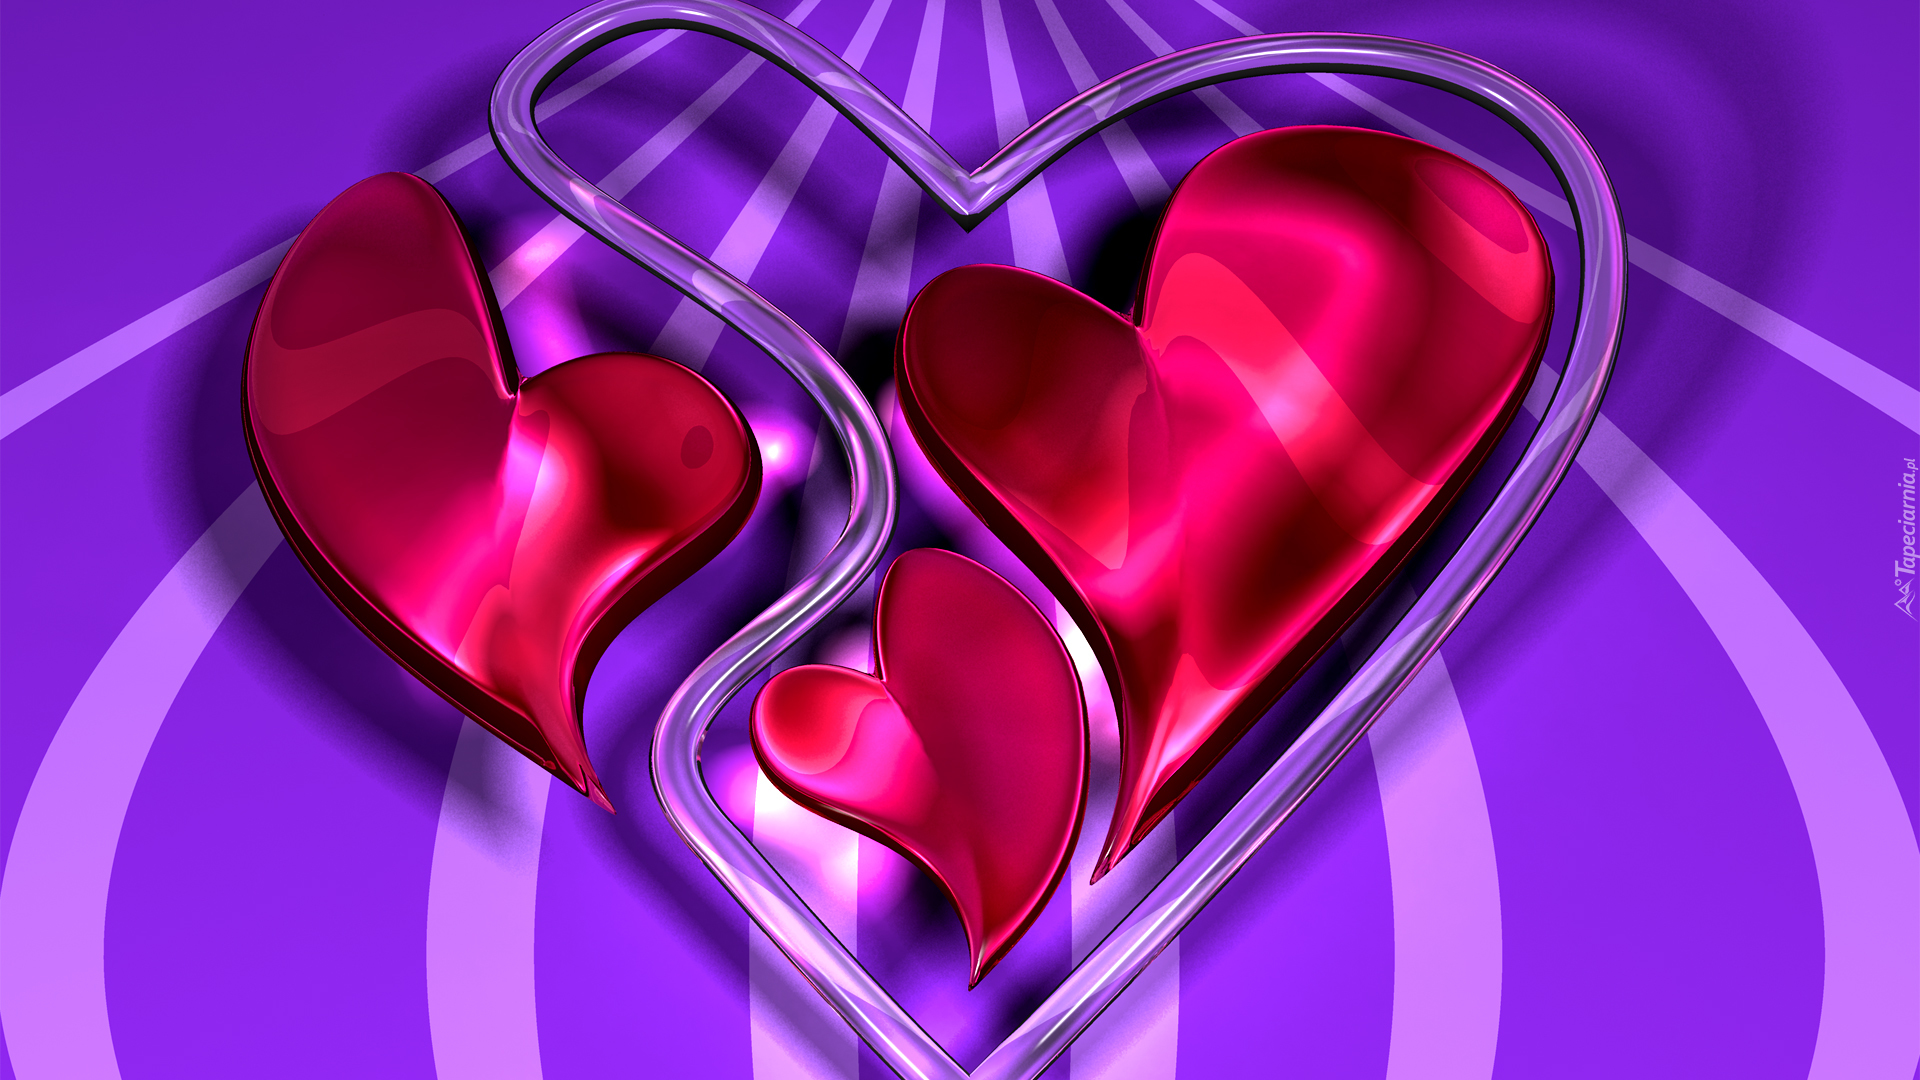 3d Heart Love Wallpapers 4852 Wallpaper: Serca W Grafice Wektorowej 3D